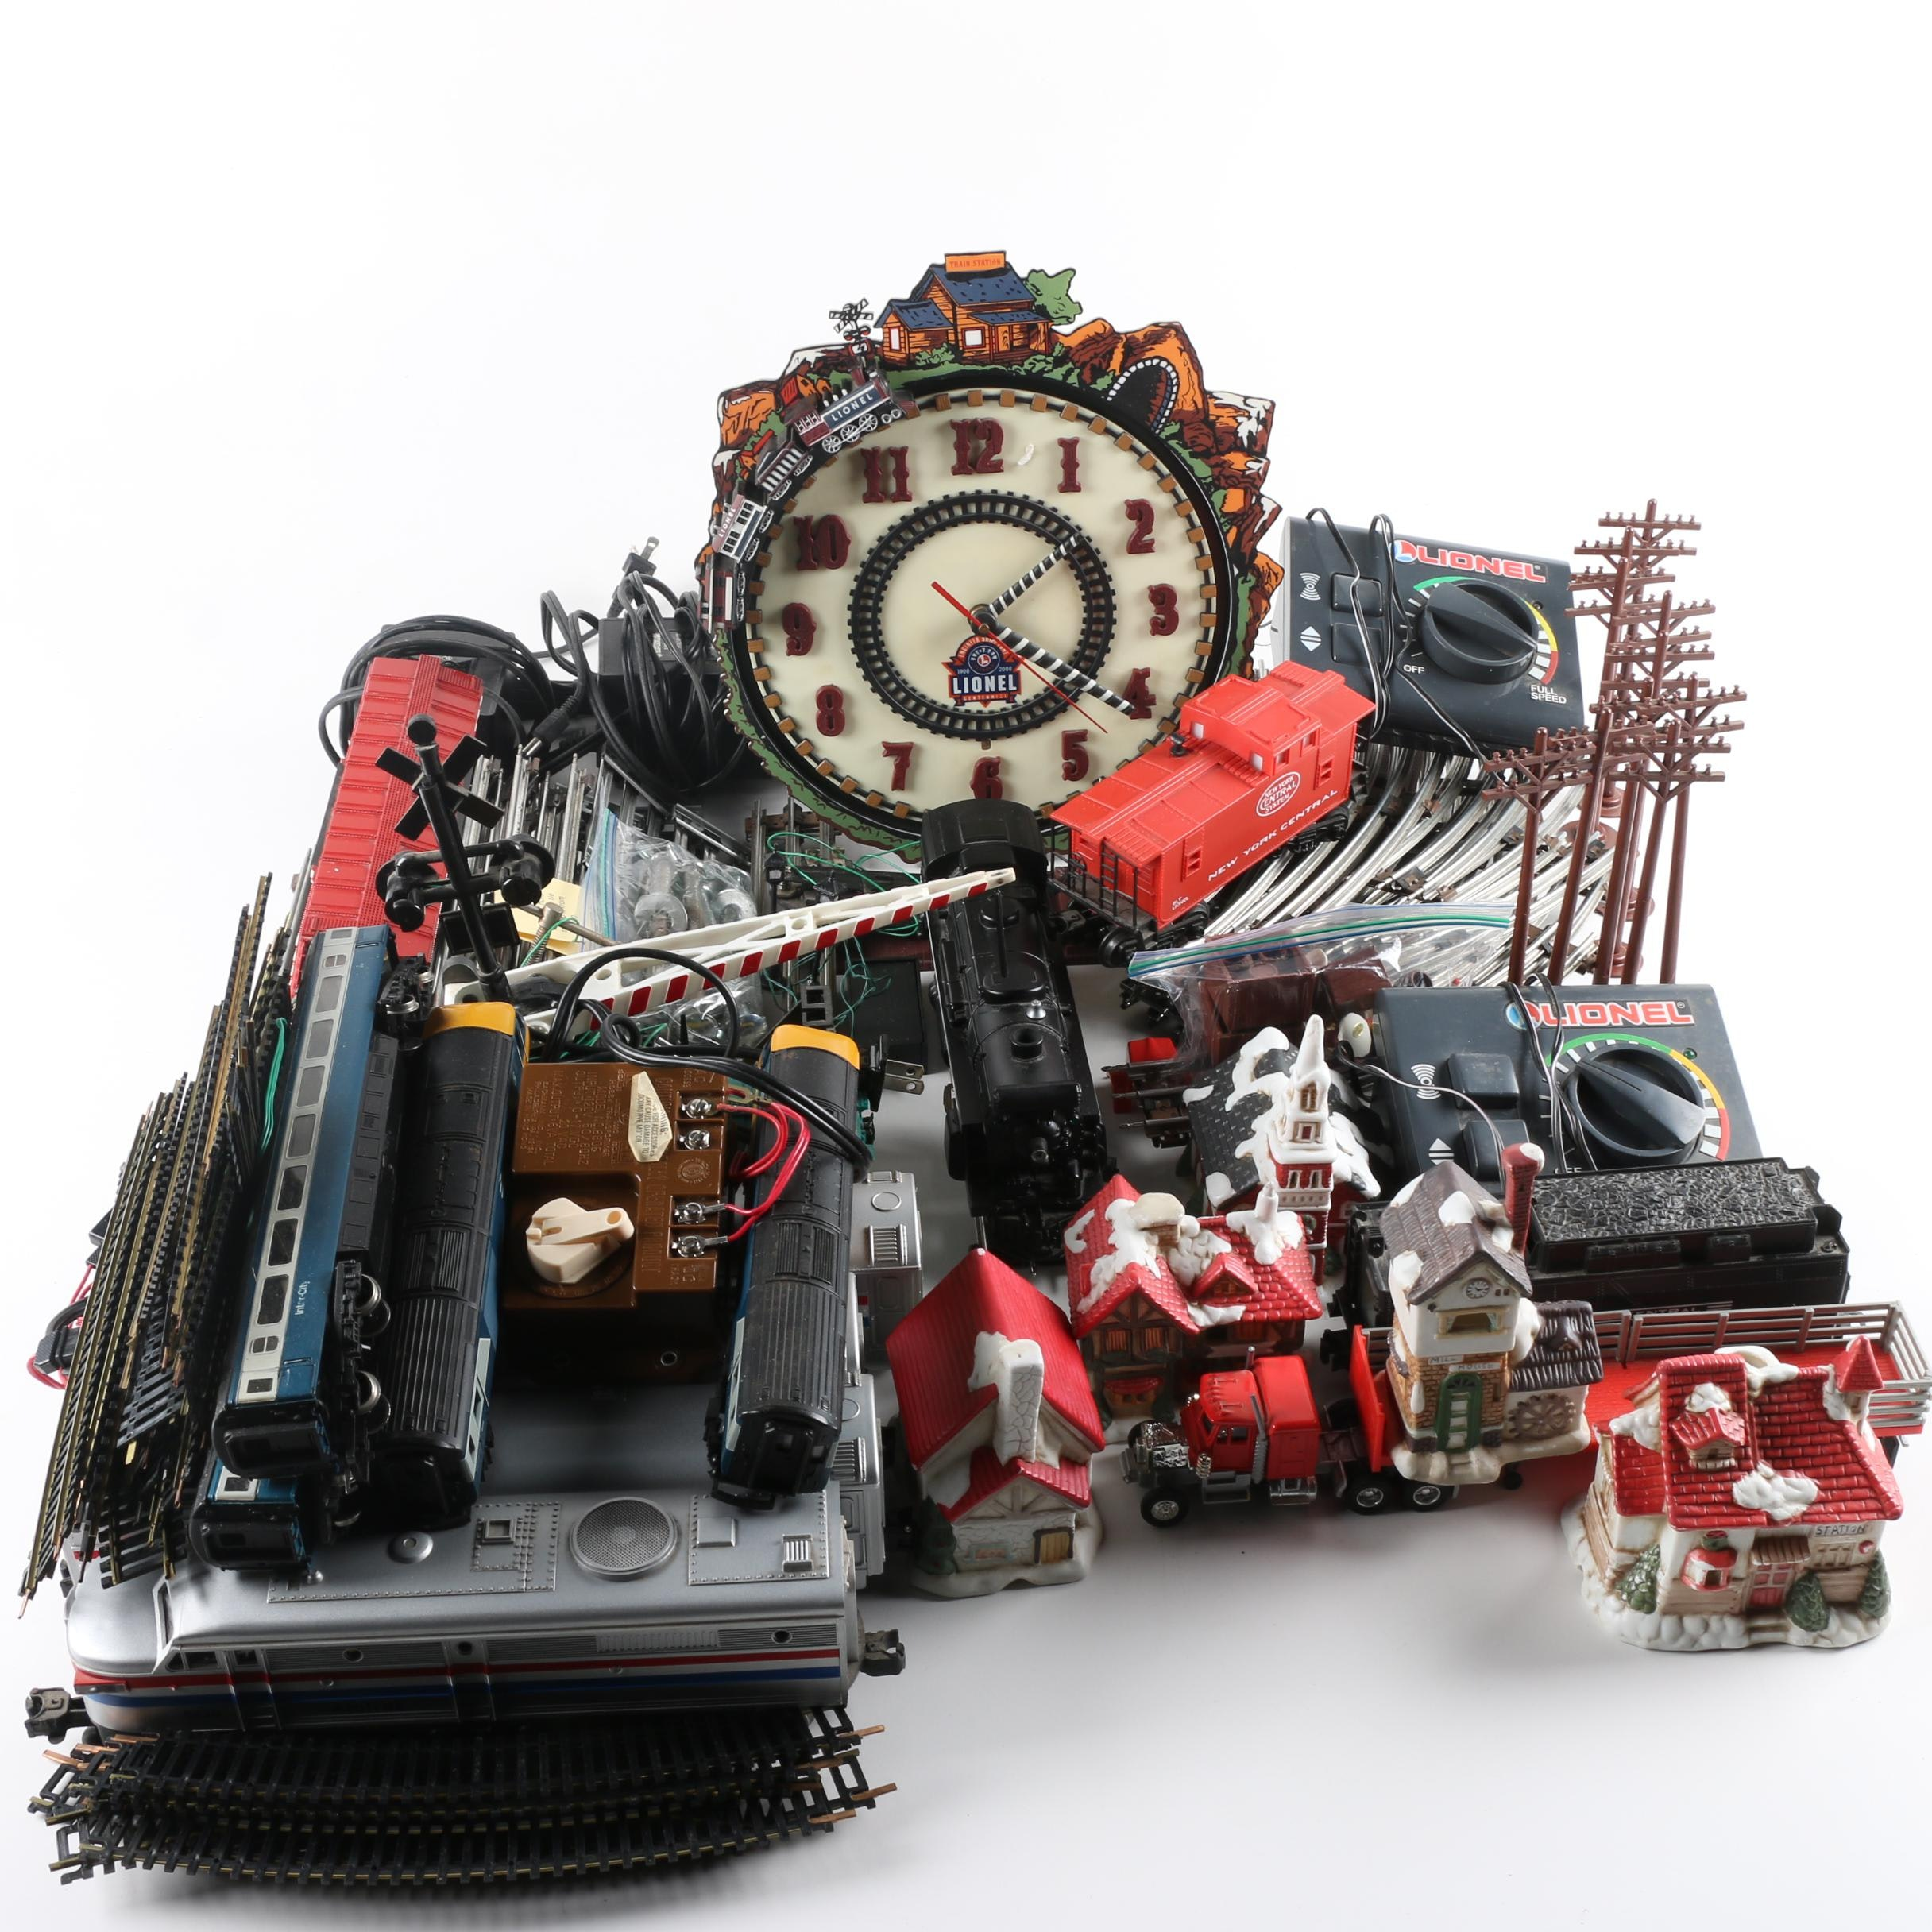 Lionel Trains, Accessories, and Clock with Christmas Village Decor